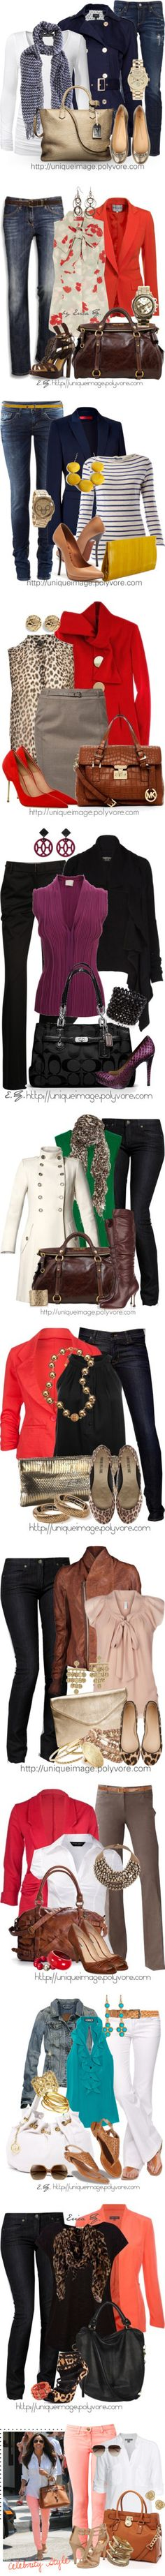 """""""My Top 2012 Sets"""" by uniqueimage ❤ liked on Polyvore"""